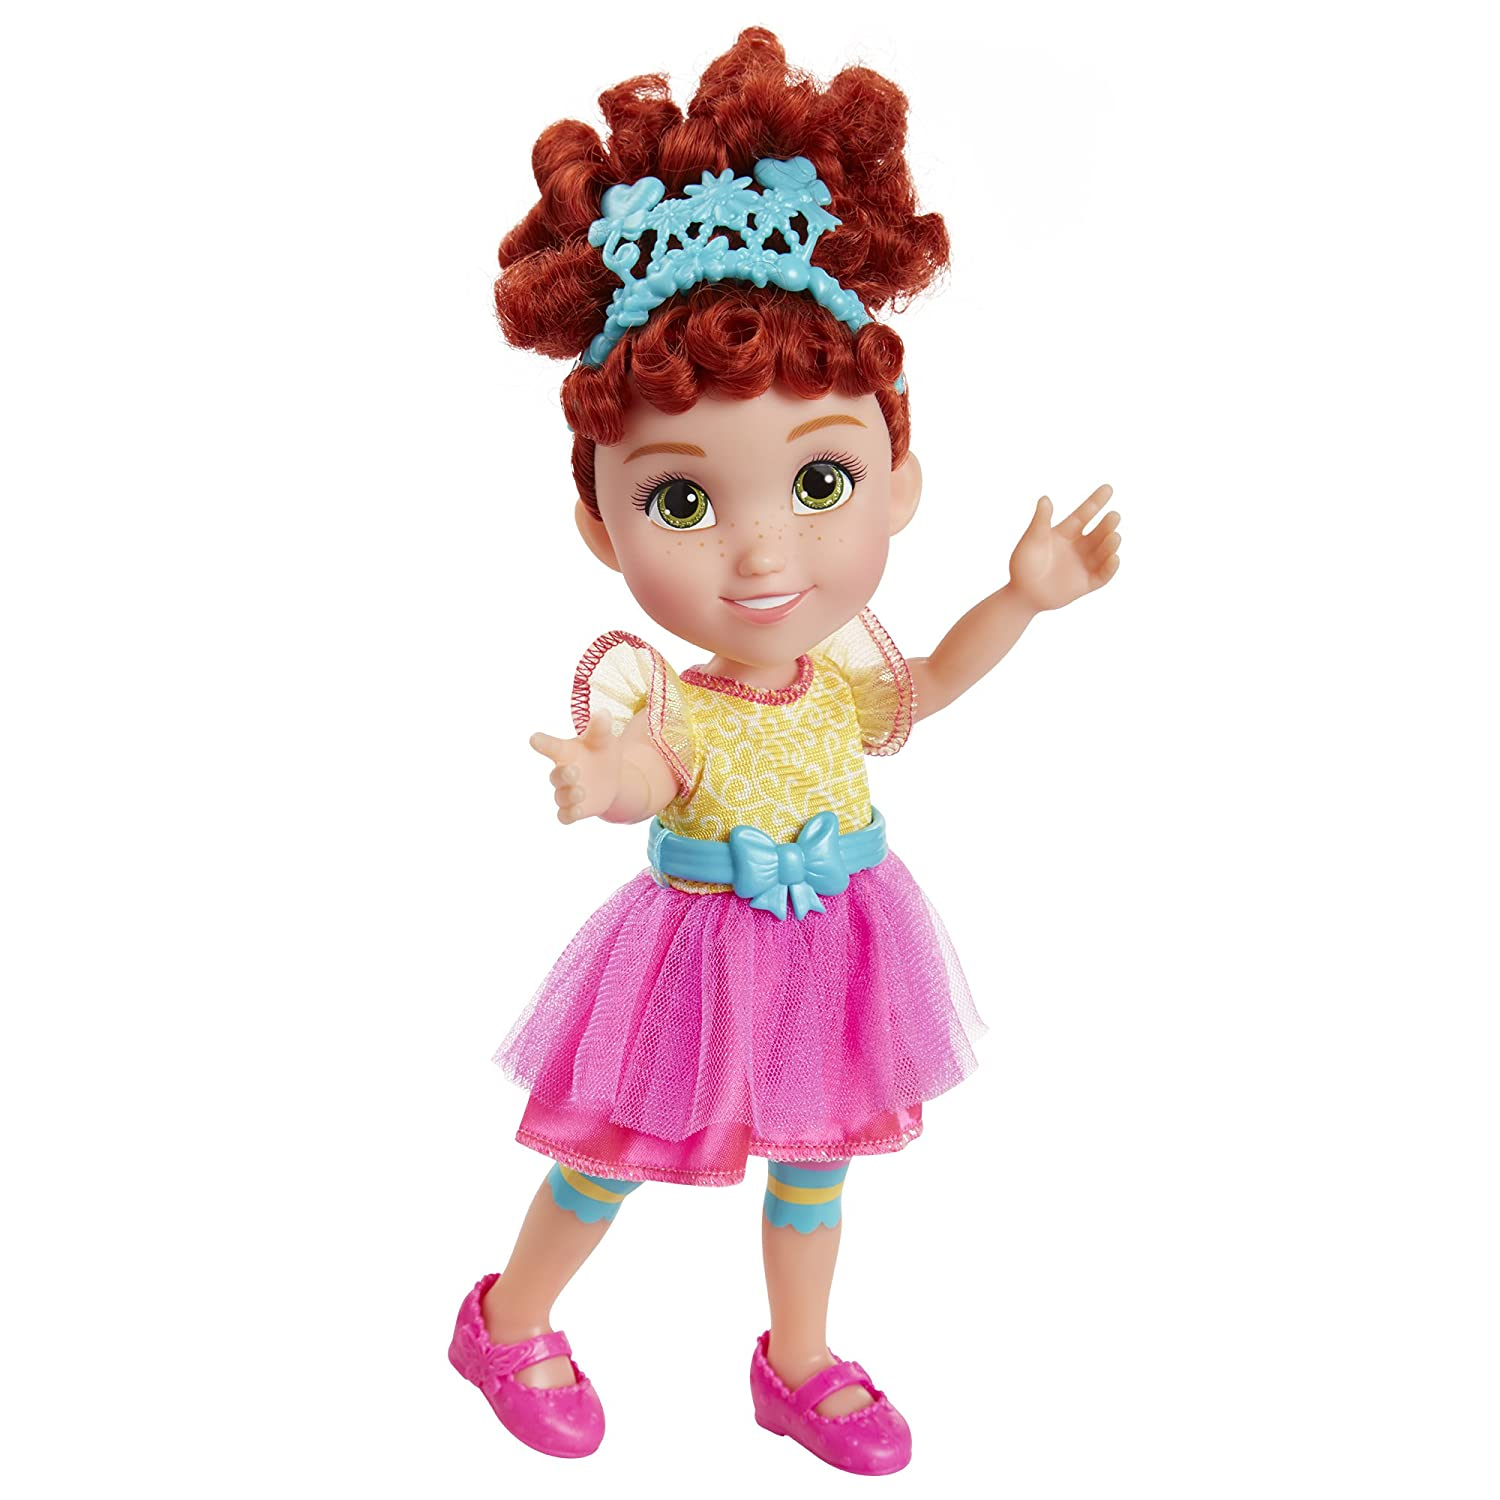 10 Inch Make Nancy Fancy Doll in Classique Outfit with Tiara Fancy Nancy Doll 6 and 7 Years Old Great Gift for Girls Ages 3 5 Shoes and Sun Glasses 4